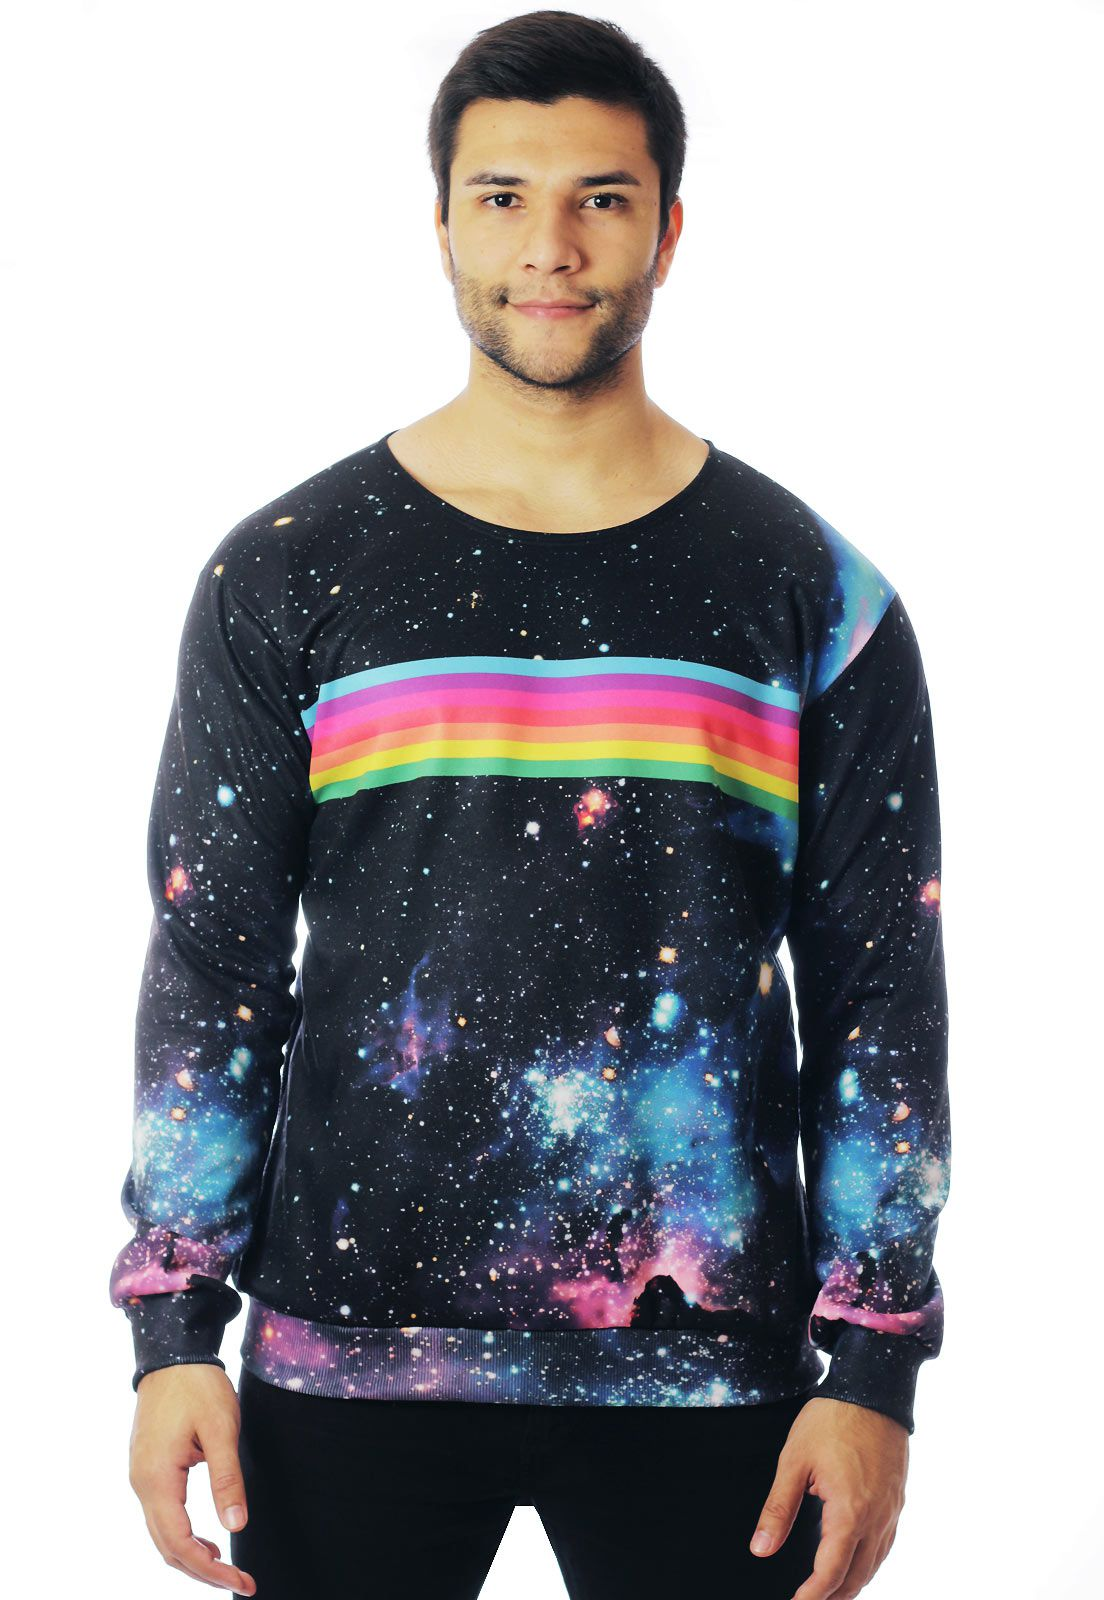 BLUSA MOLETOM ESTAMPADO GALAXY FULL PRINT UNISSEX RAINBOW GALAXY